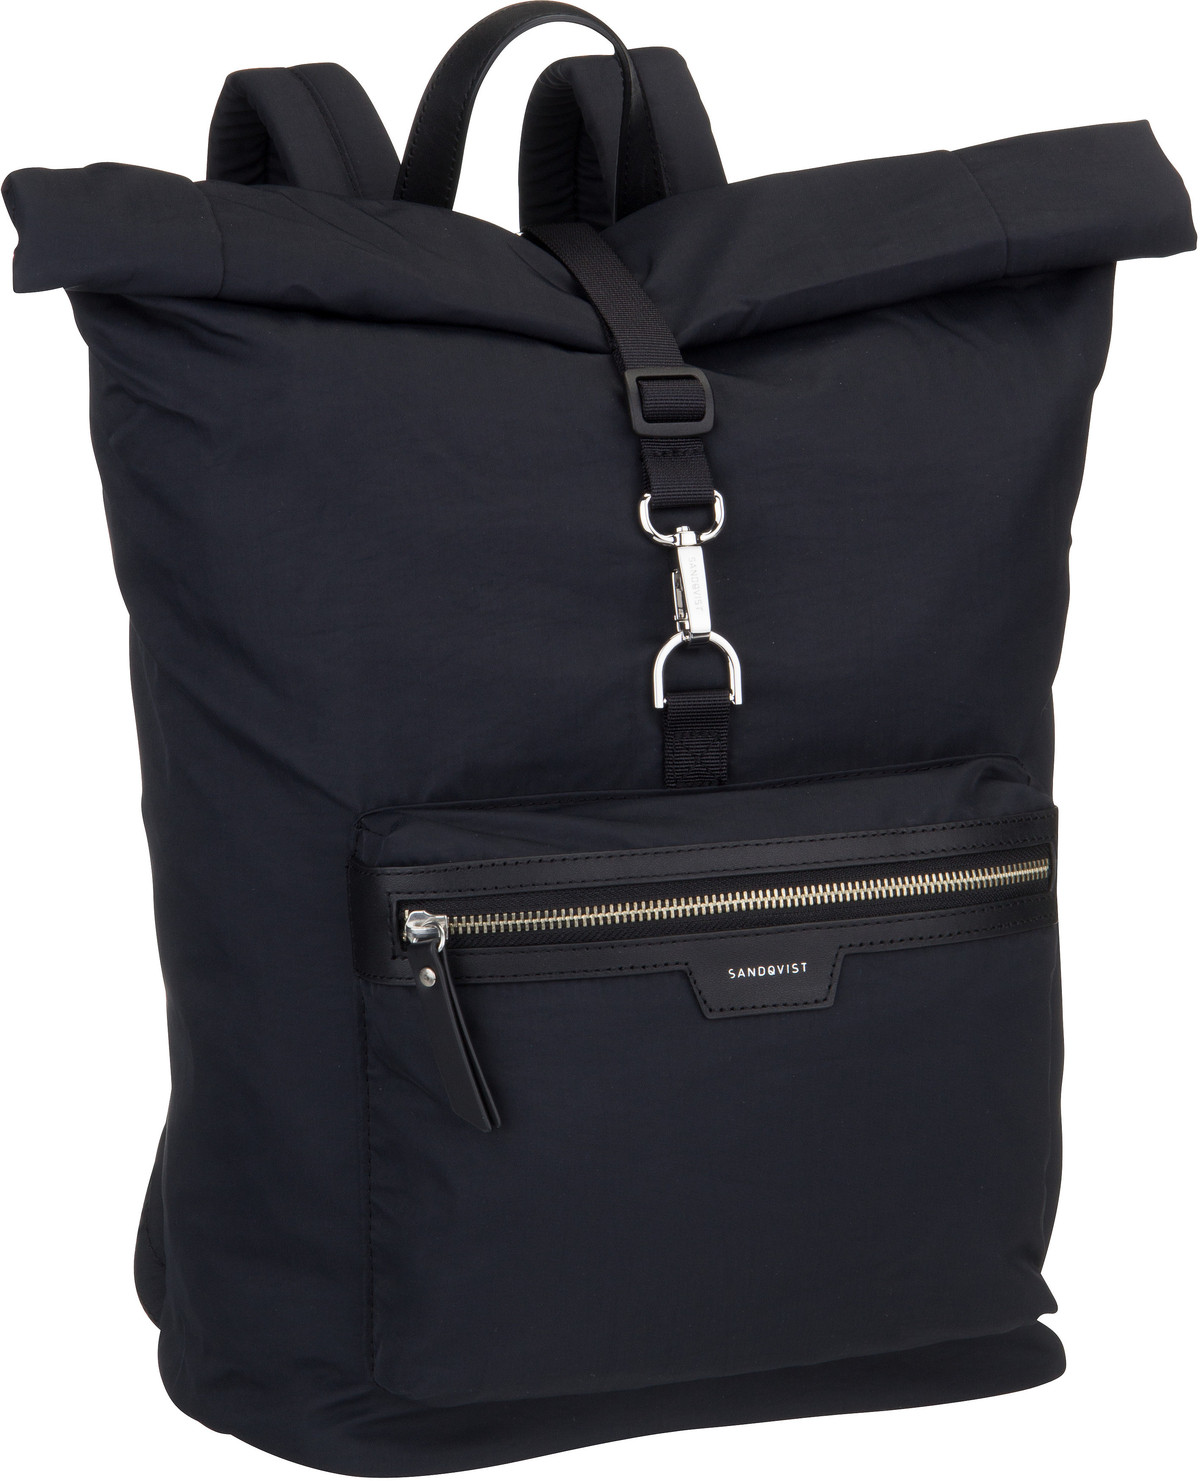 Rucksack / Daypack Siv Backpack Black/Black Leather